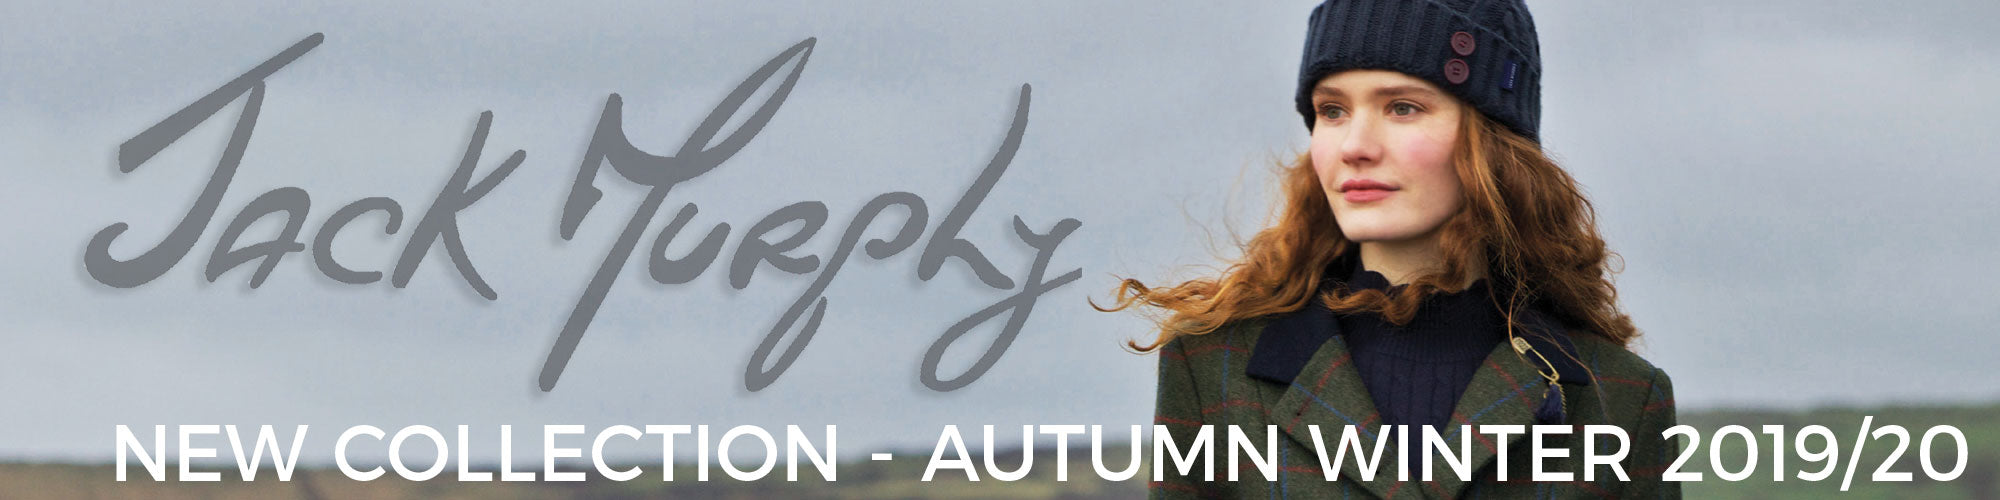 Jack Murphy Autumn Winter 2019 Has Arrived. The Very Latest Collection from Jack Murphy has just arrived.